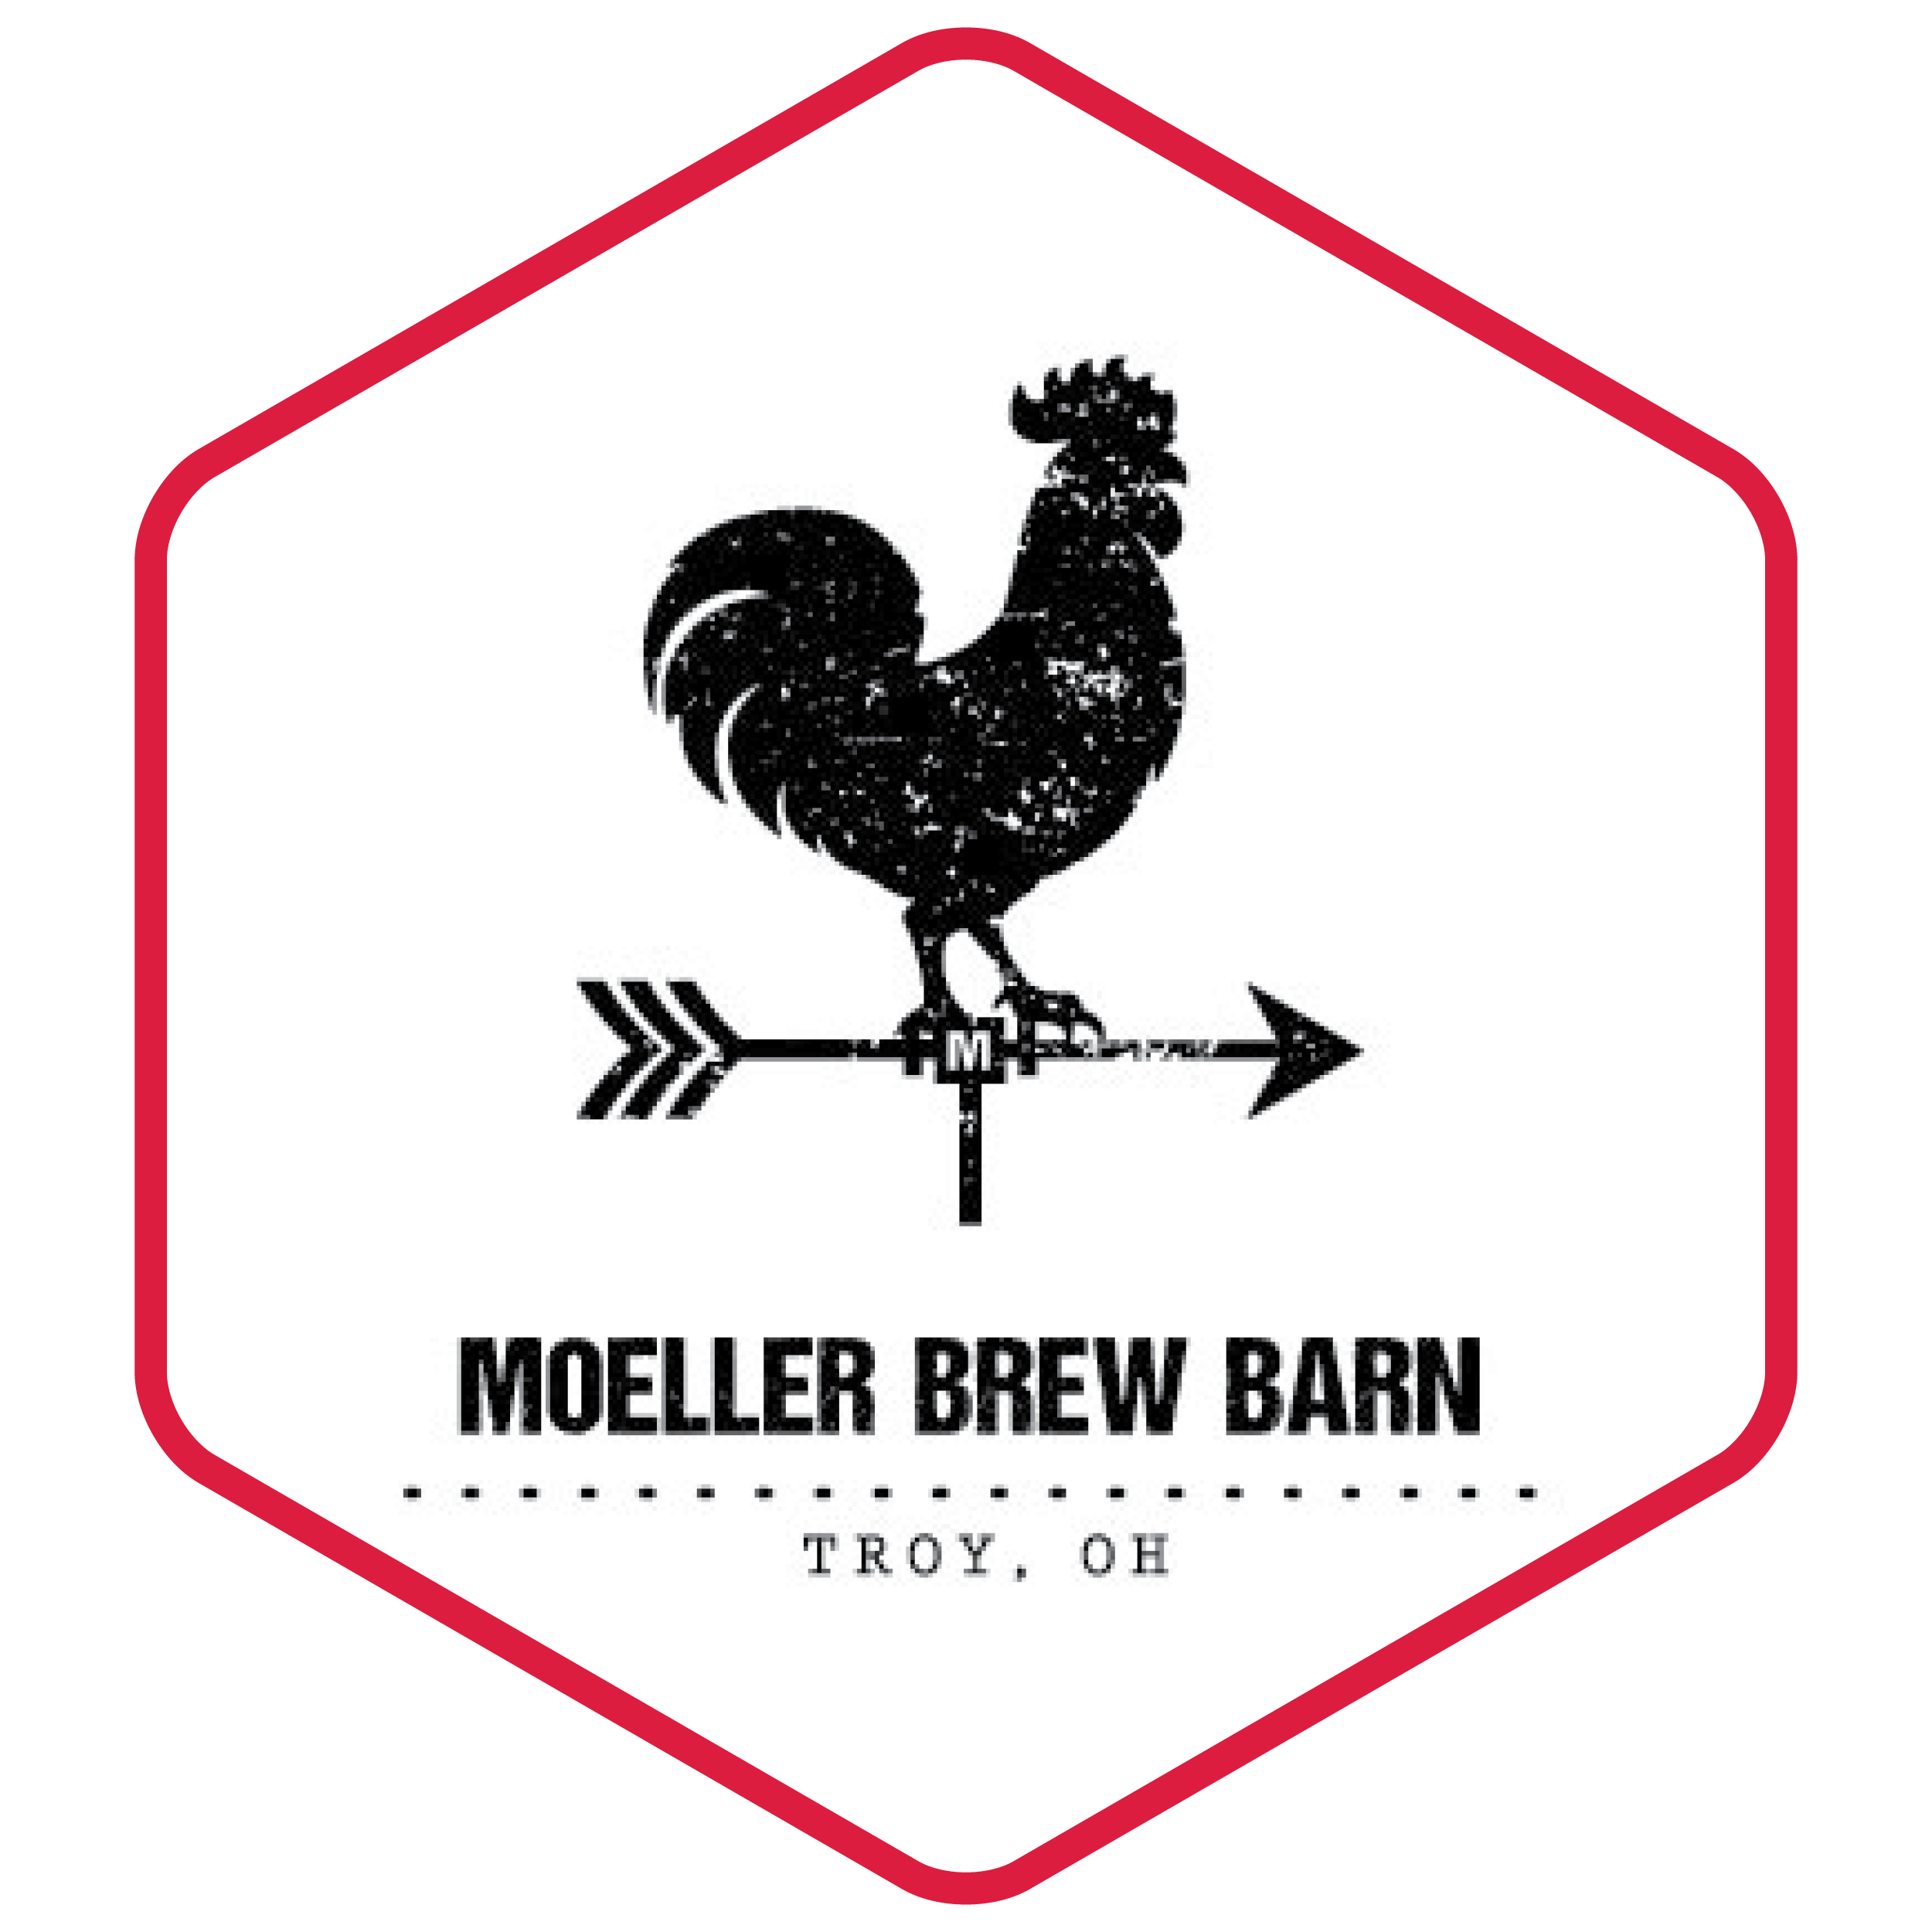 image of Moeller Brew Barn's logo with in a hexagon with a red border